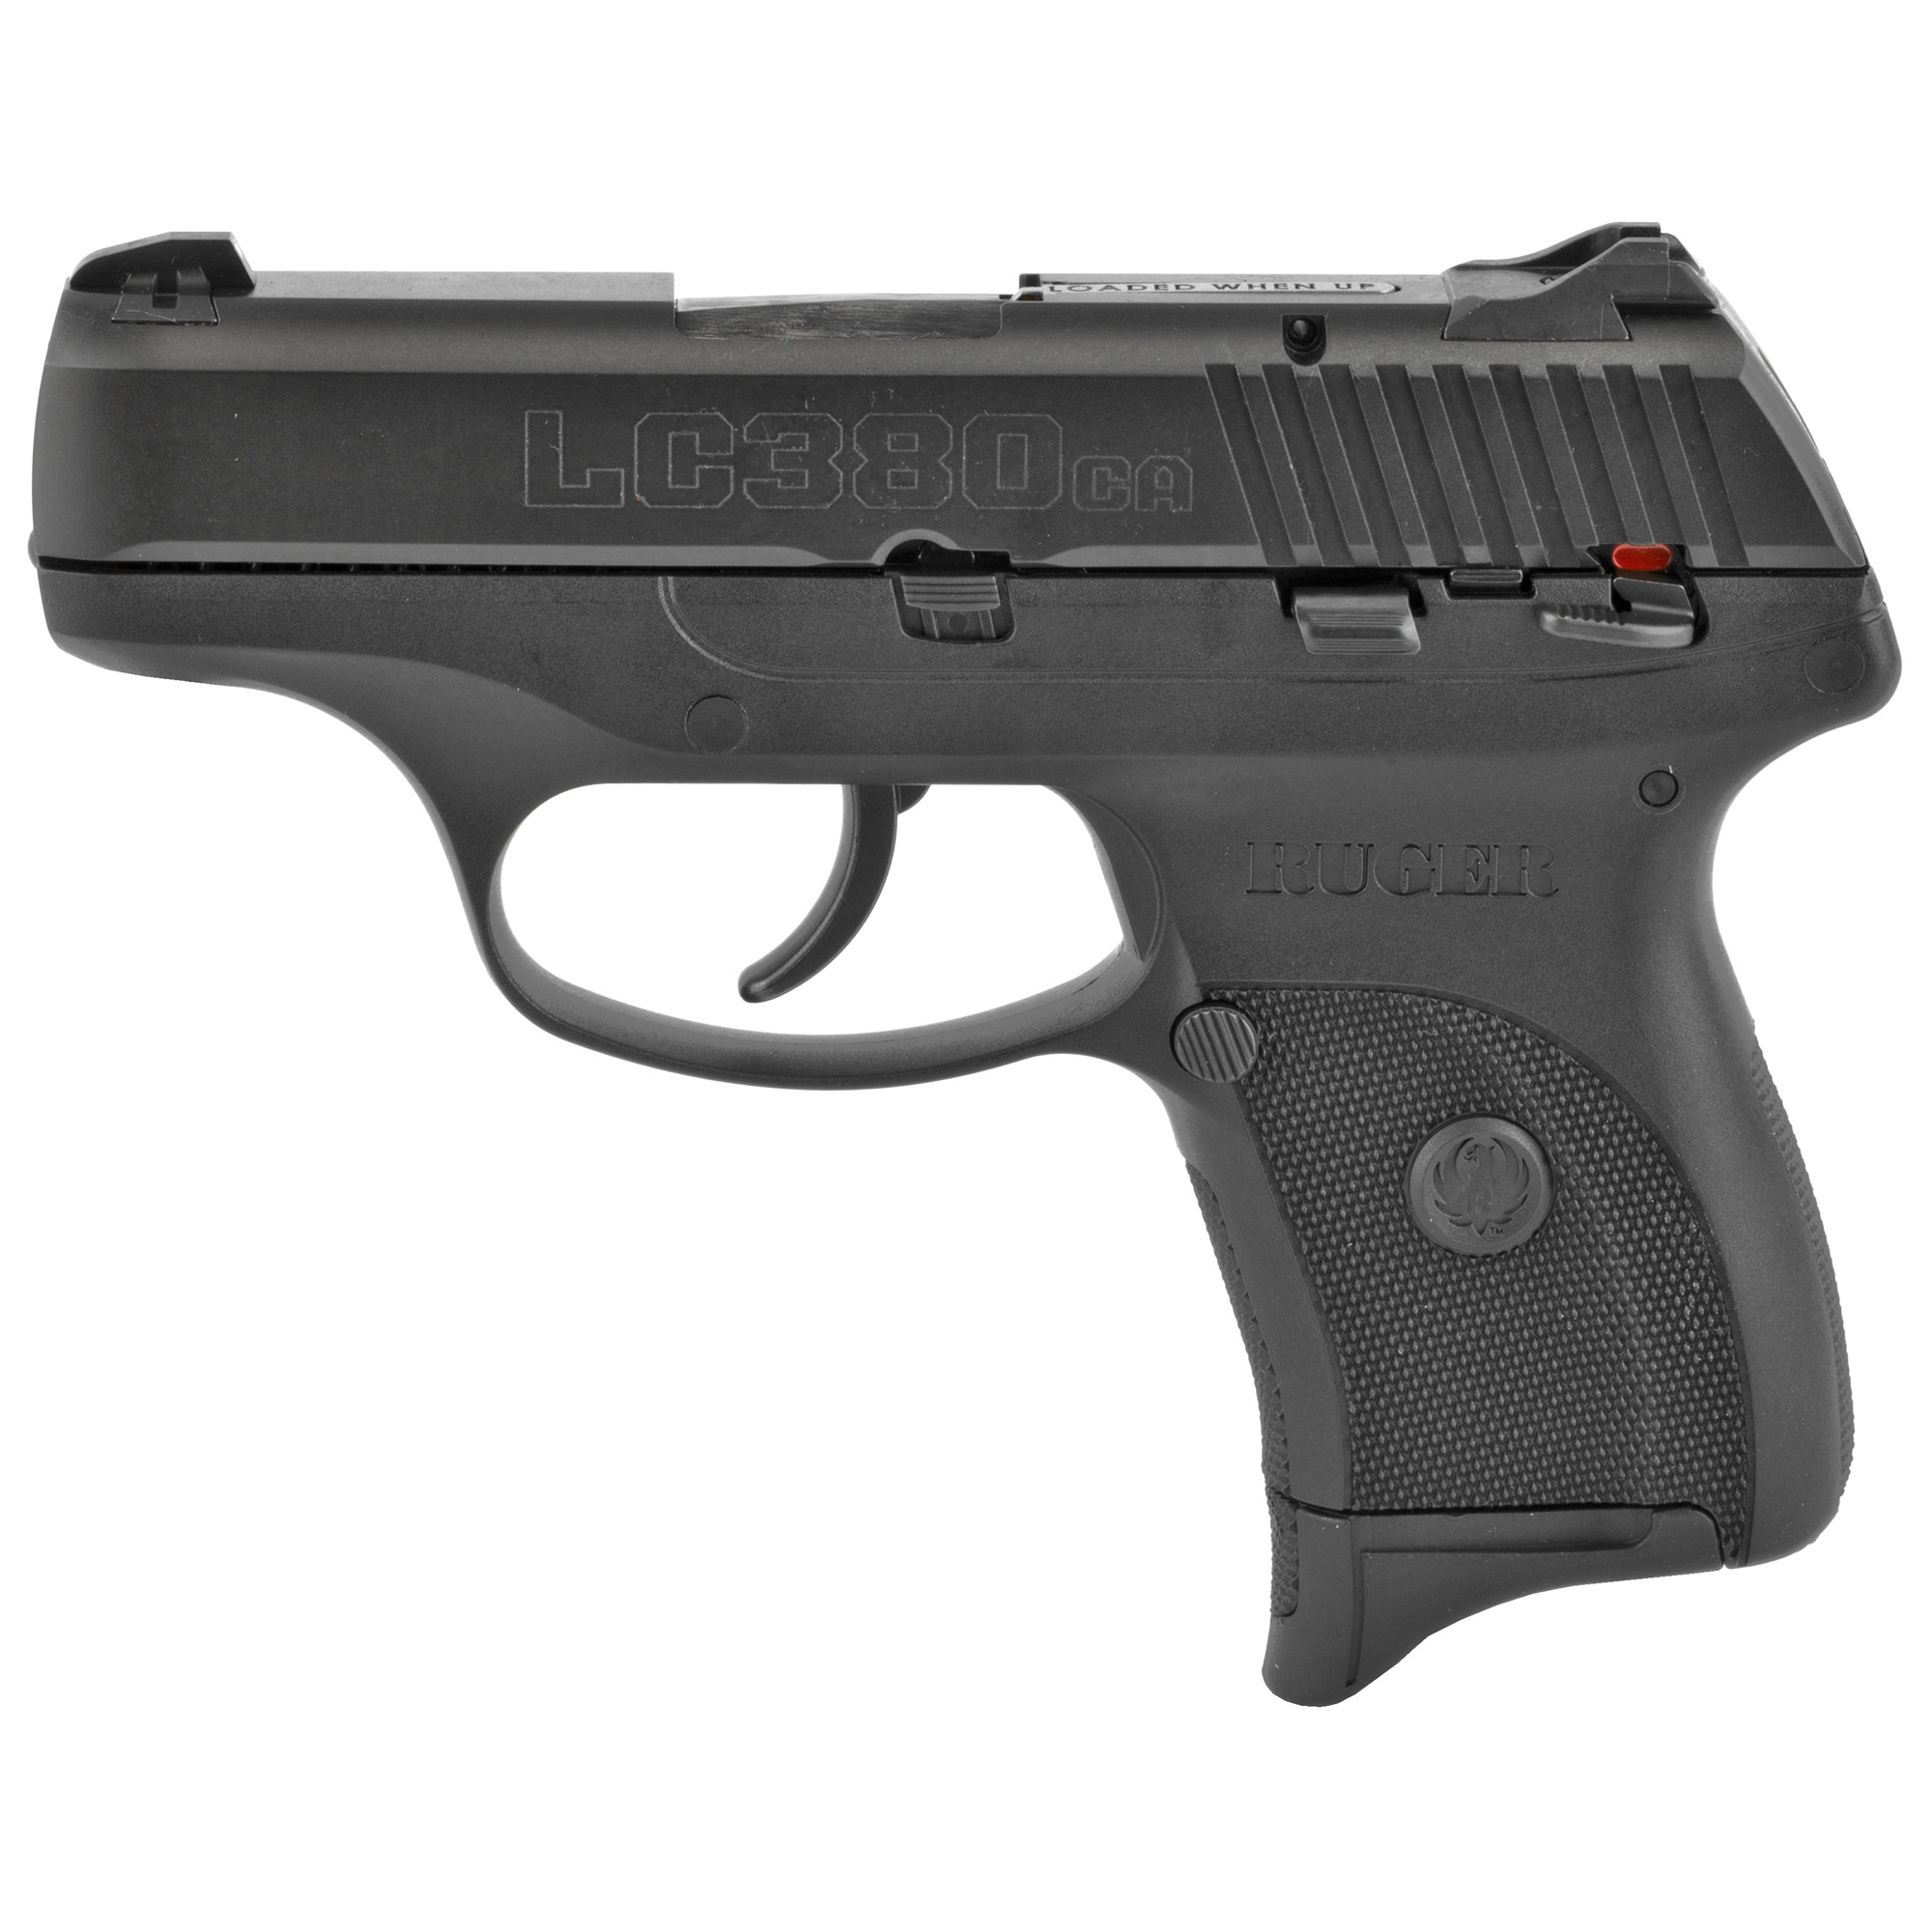 """Ruger LC380 models are slim"""" lightweight and compact. They are just slightly larger (less than 1"""" taller and 1"""" longer) than the popular and incredibly compact LCP. It is constructed with a blued"""" through-hardened alloy steel slide and black"""" one-piece"""" high-performance"""" glass-filled nylon grip frame. It's checkered grip frame provides a secure and comfortable grip and it includes a finger grip extension floorplate that can be added to the magazine for comfort and grip. Safety features include internal lock"""" manual safety"""" magazine disconnect and patented loaded chamber indicator that allows for visual confirmation of a loaded or empty chamber. Also includes one 7-round magazine."""